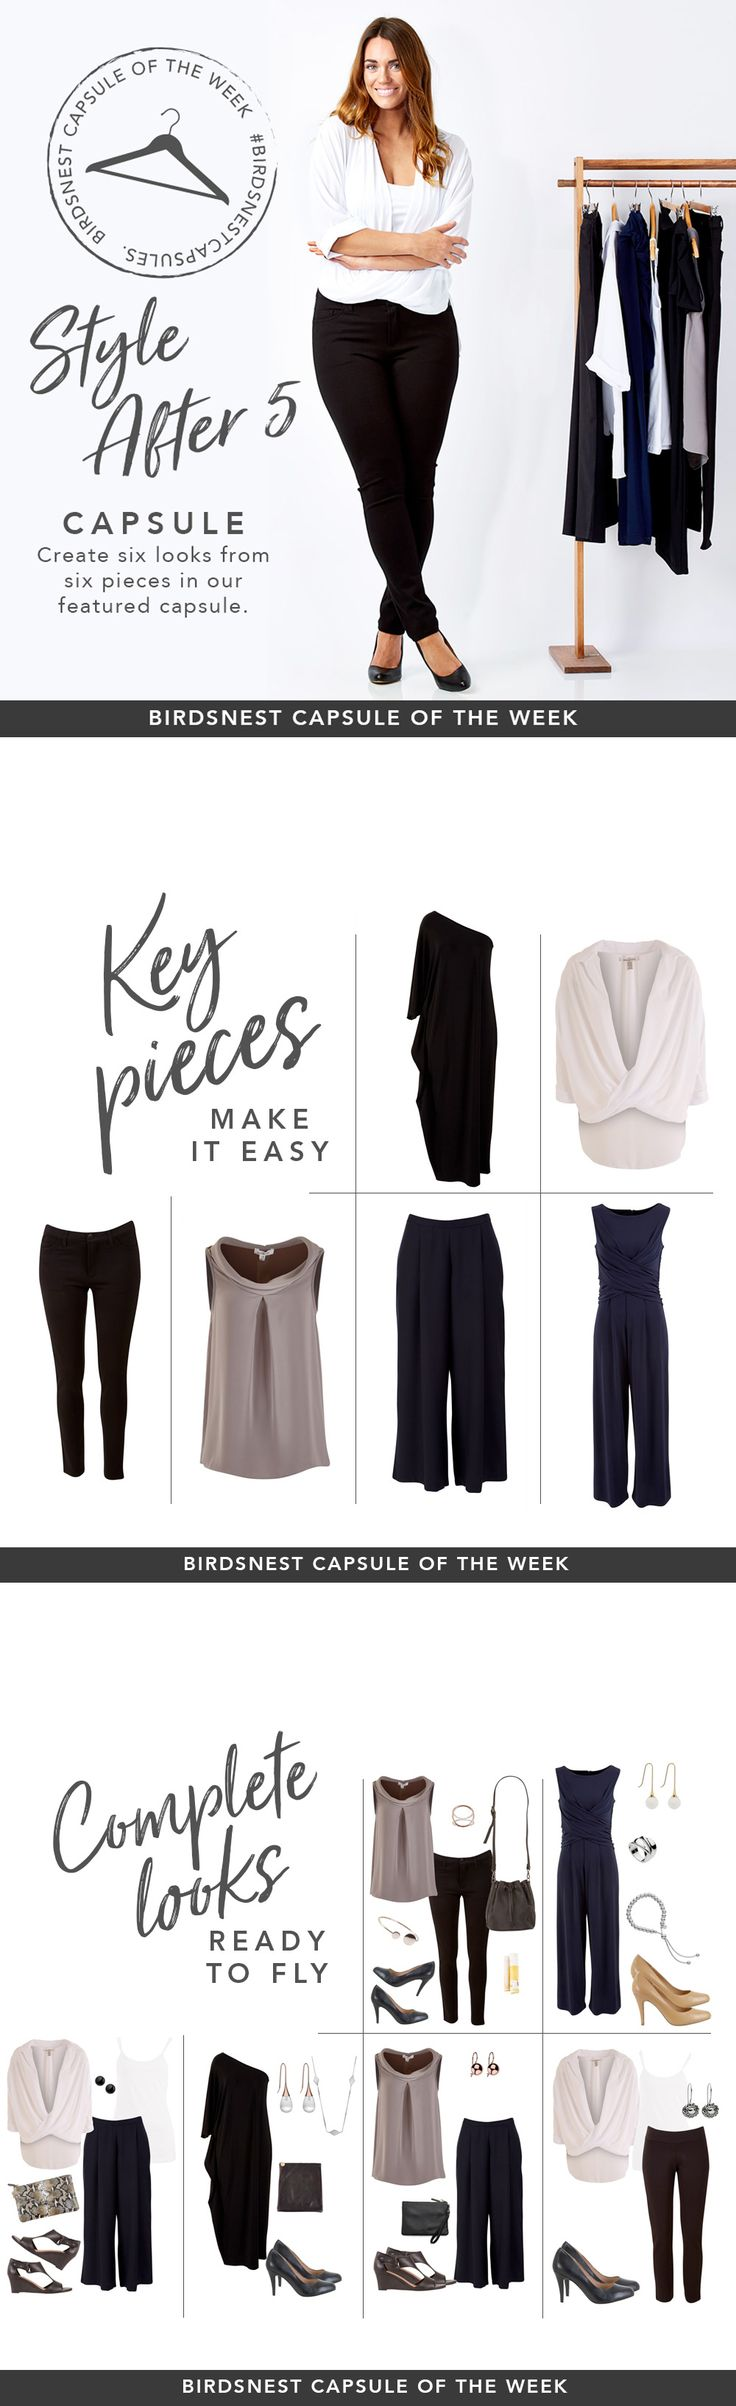 Great pieces for clothes to wear for my gigs - lots of great variety and yet minimal!